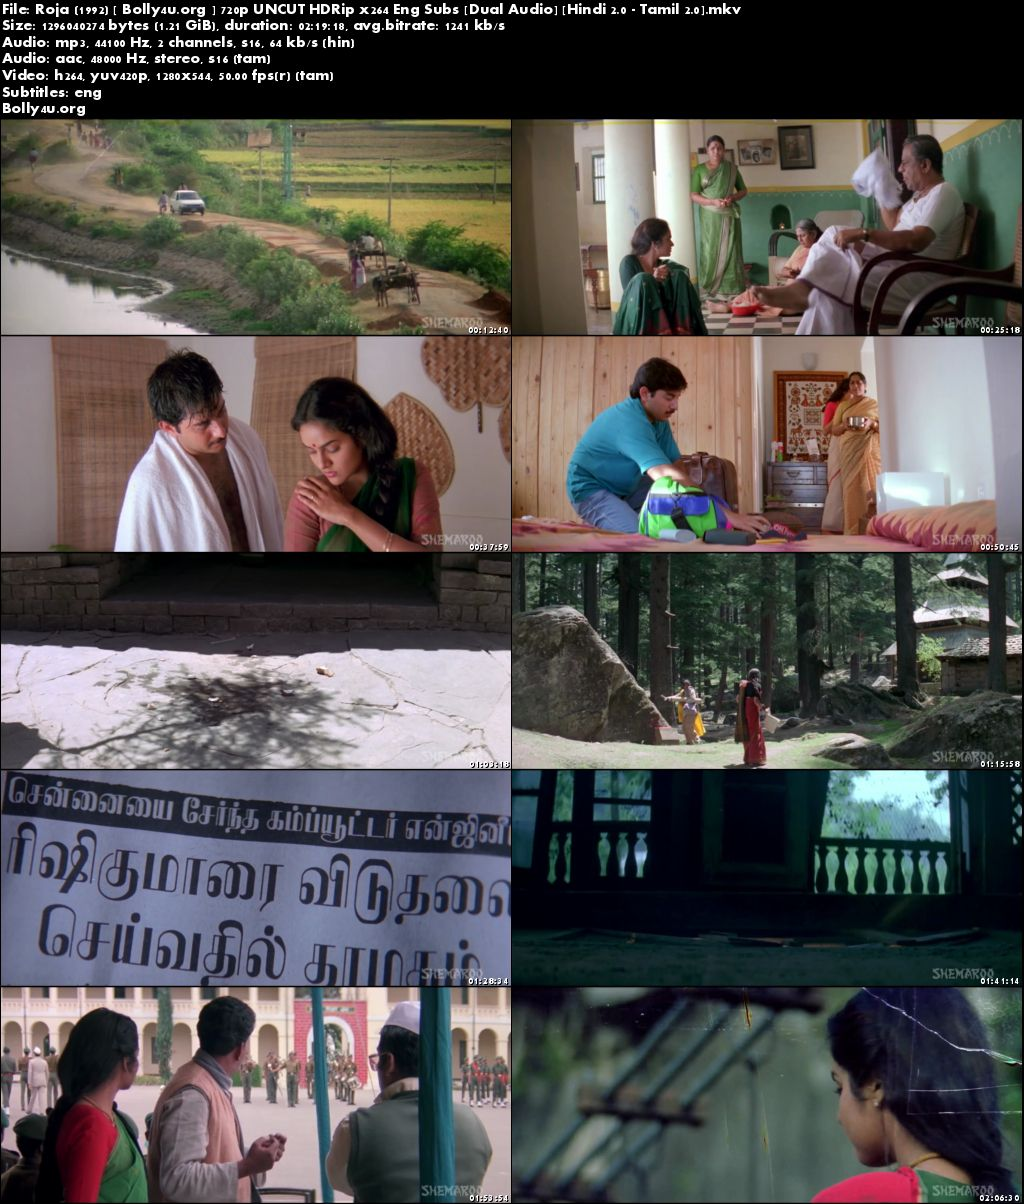 Roja 1992 HDRip UNCUT Hindi Dubbed Dual Audio 720p ESub Download